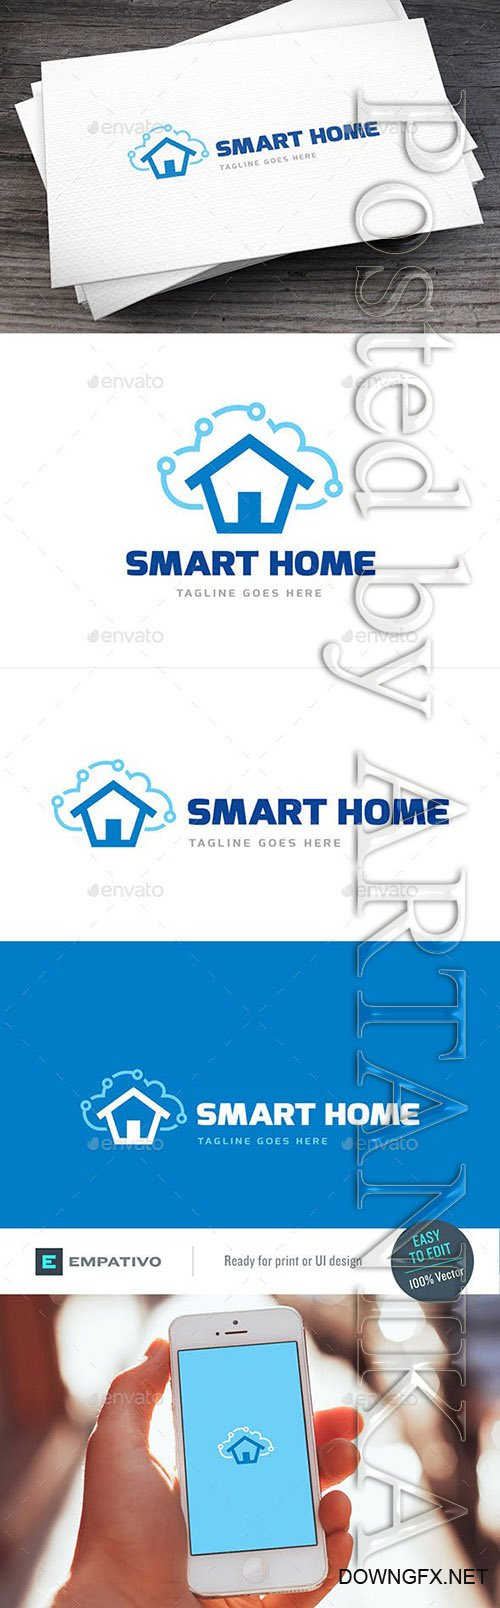 Graphicriver - Smart Home Logo Template 11307418